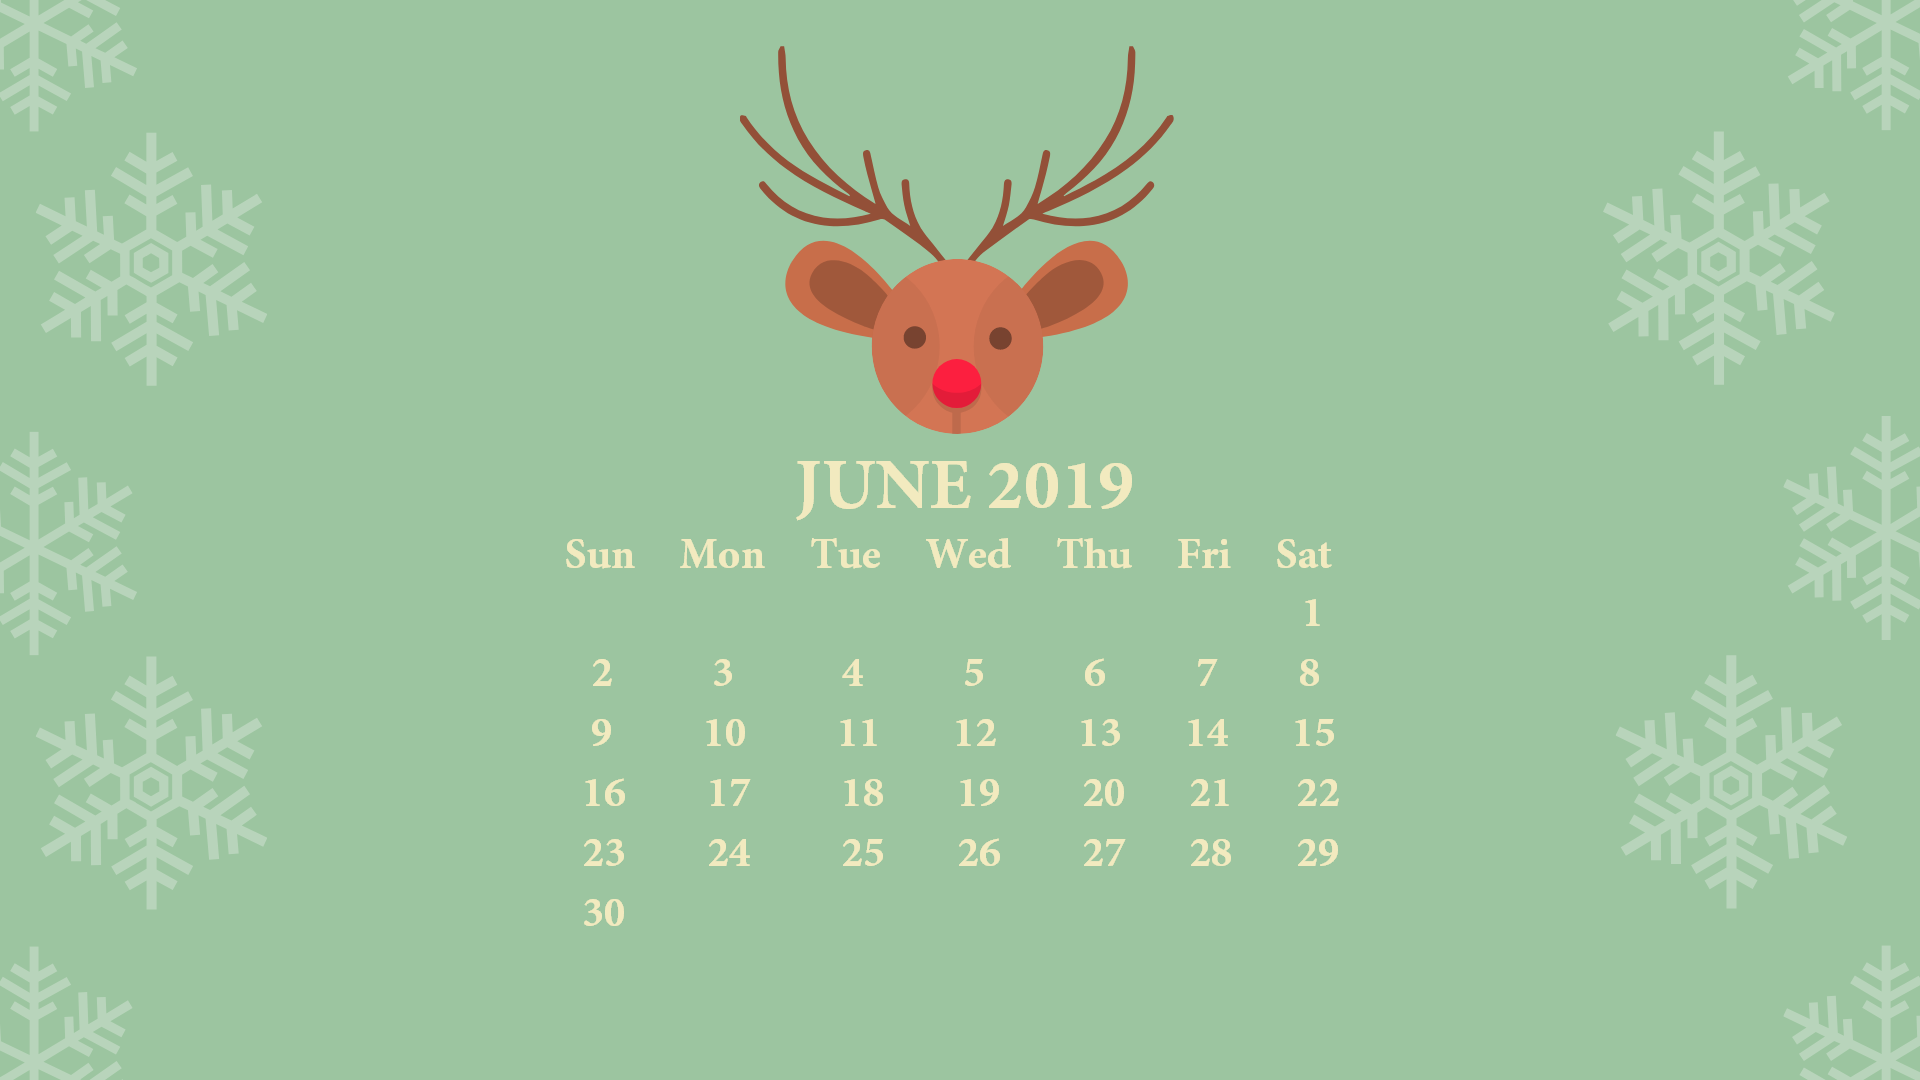 June 2019 Desktop Wallpaper with Calendar   Printable 1920x1080